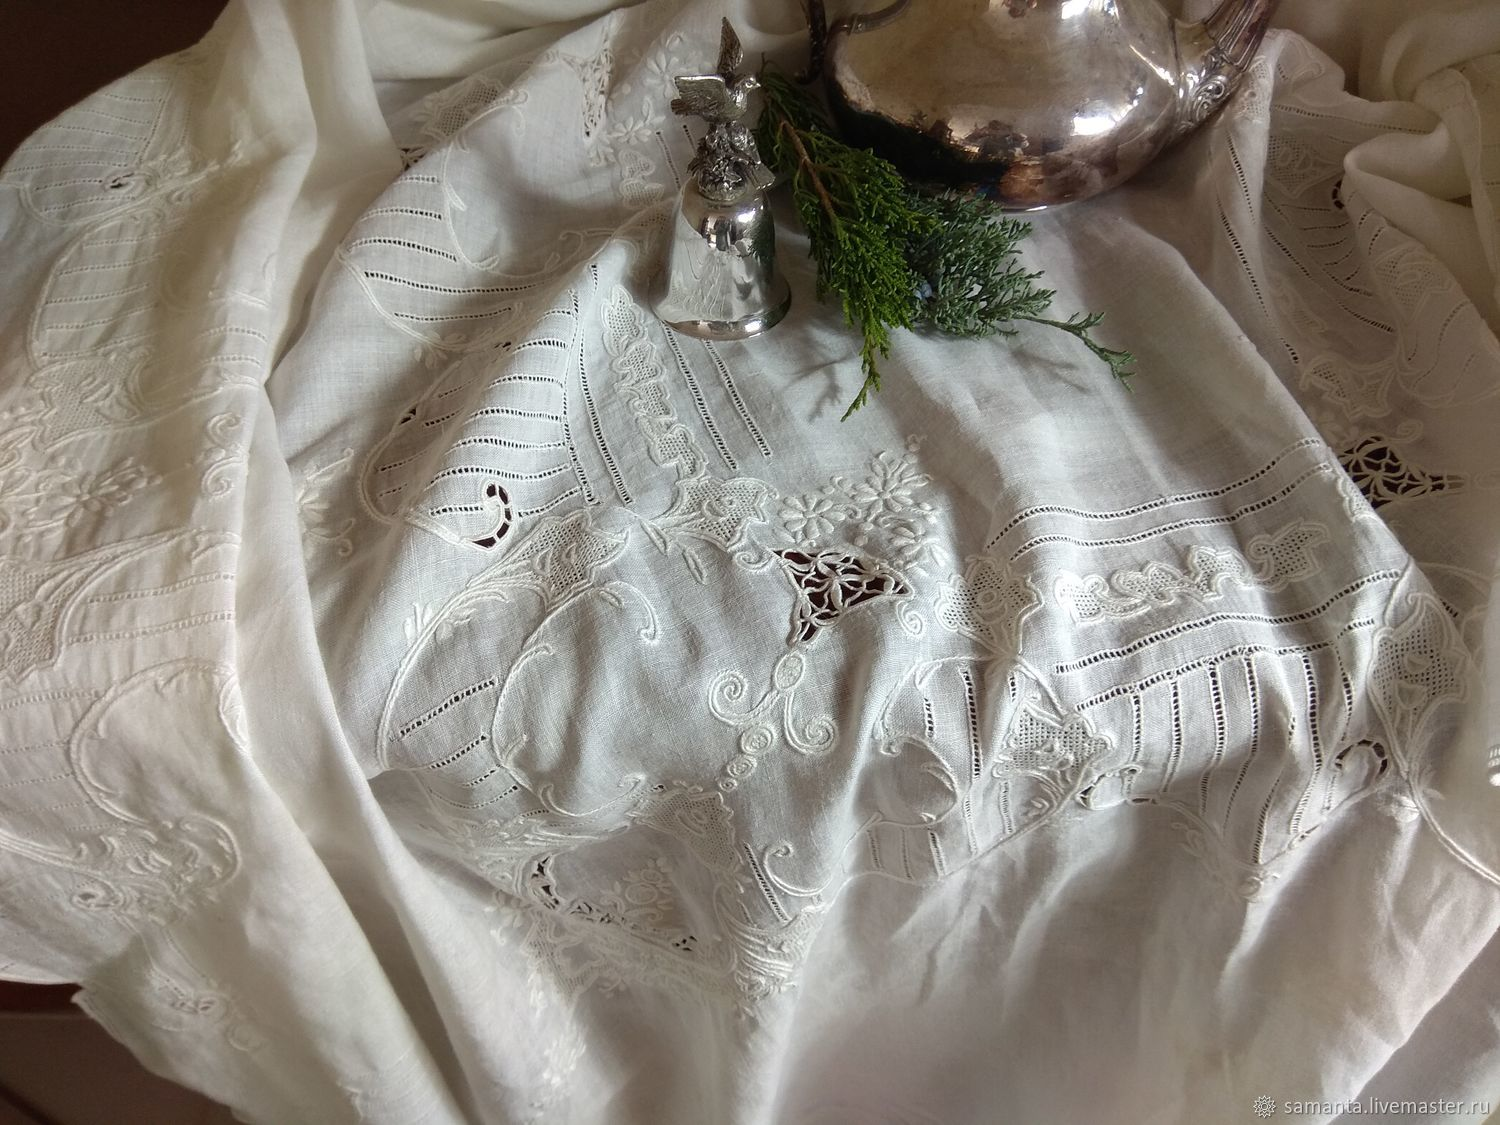 Order Antique Large Tablecloth U0027Italian Styleu0027. Vintage Lace And ...